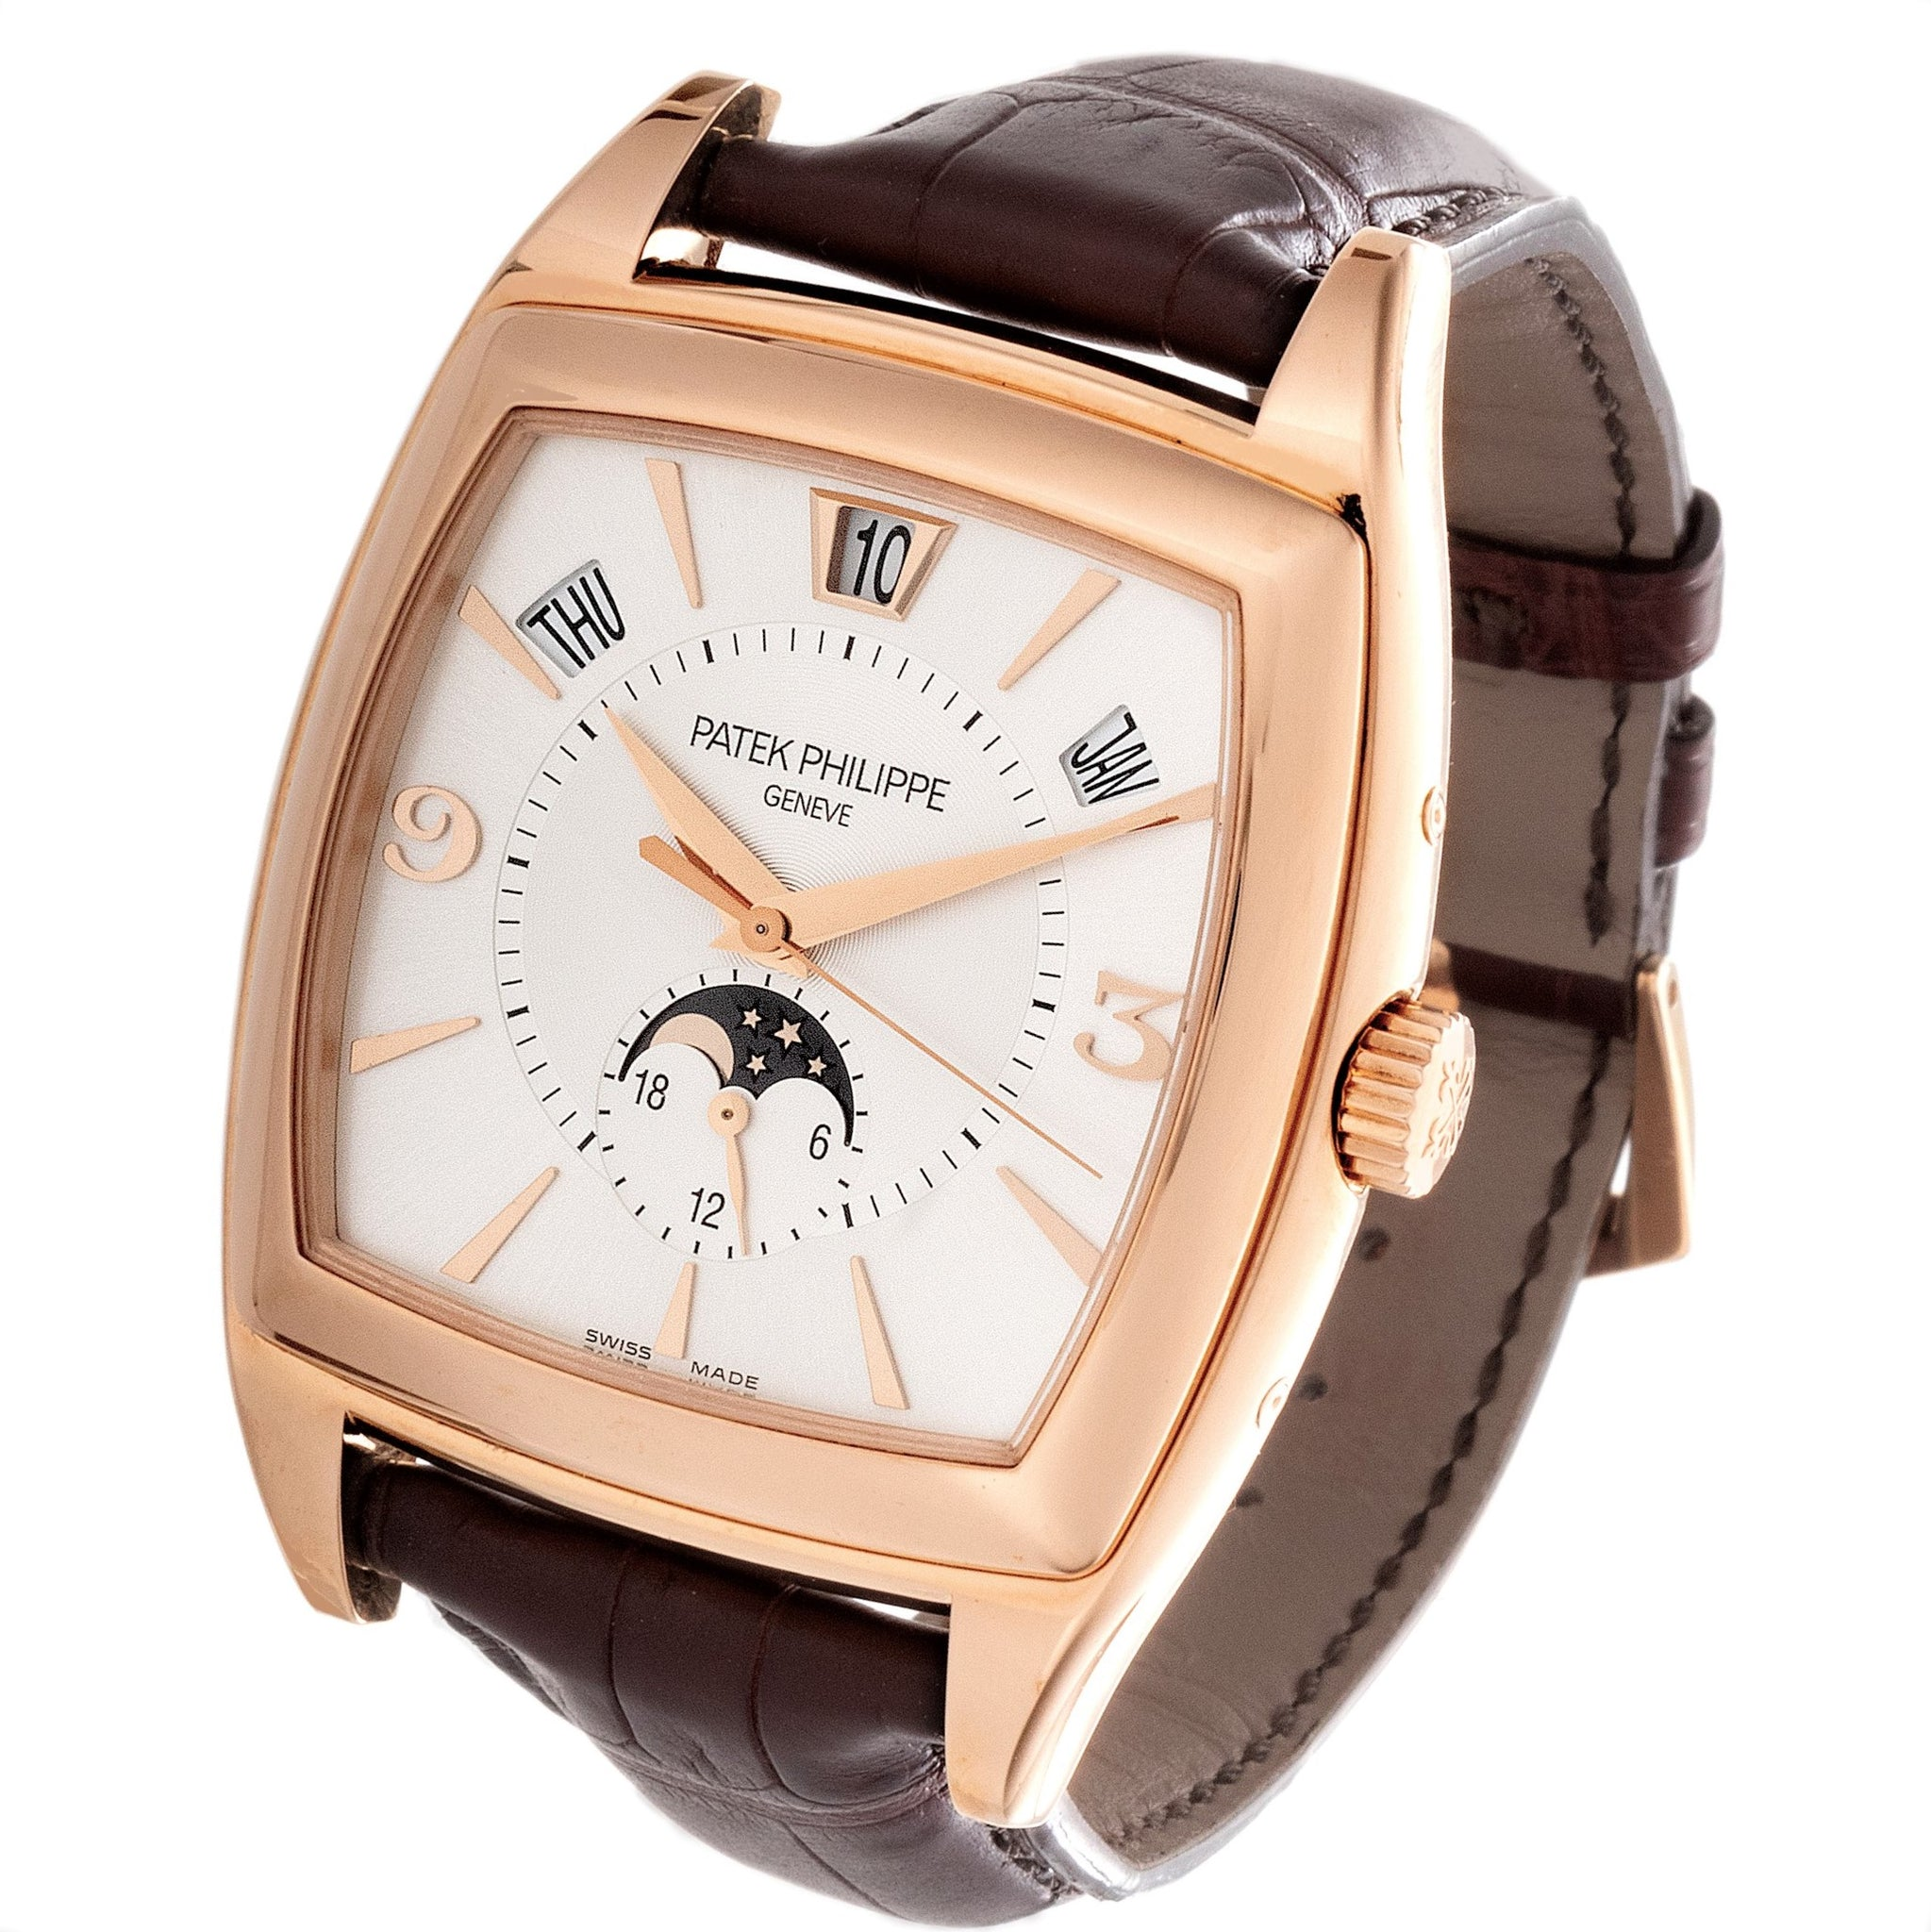 Patek Philippe 5135R Annual Calendar Watch